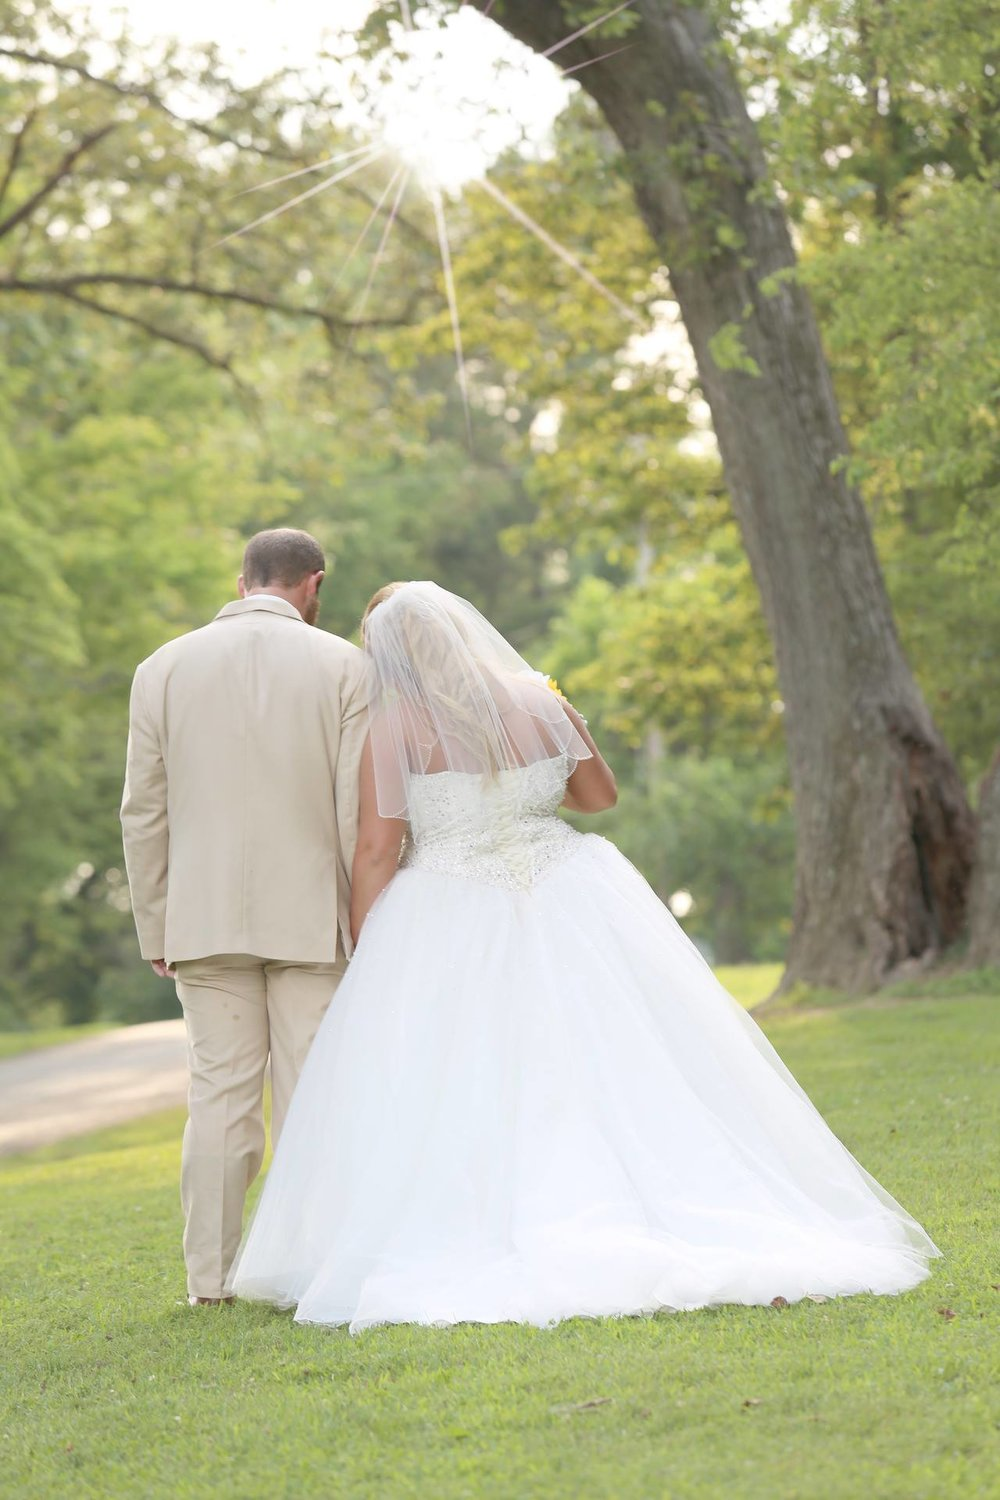 ENGAGEMENTS & WEDDINGS - There are still a couple dates in 2017 open for weddings, and just a few remaining for 2018! Message for more information!